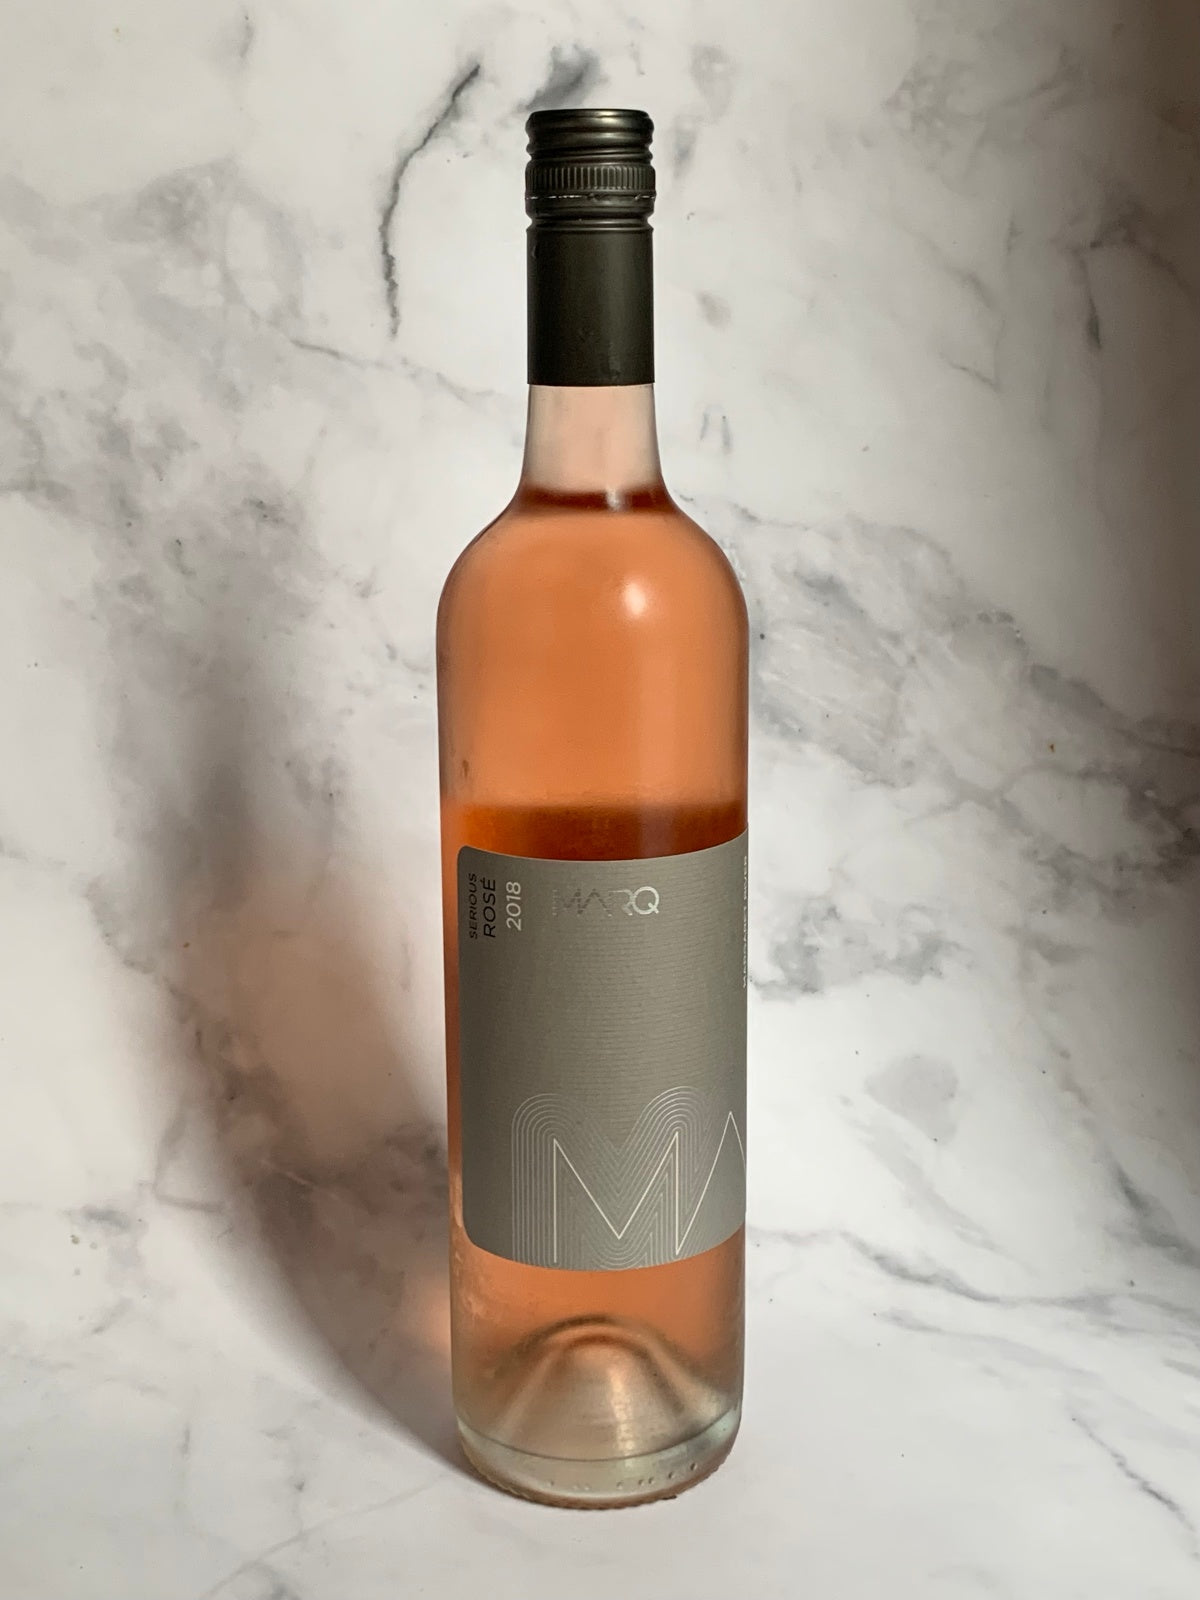 Marq 'Serious Rose' Grenache